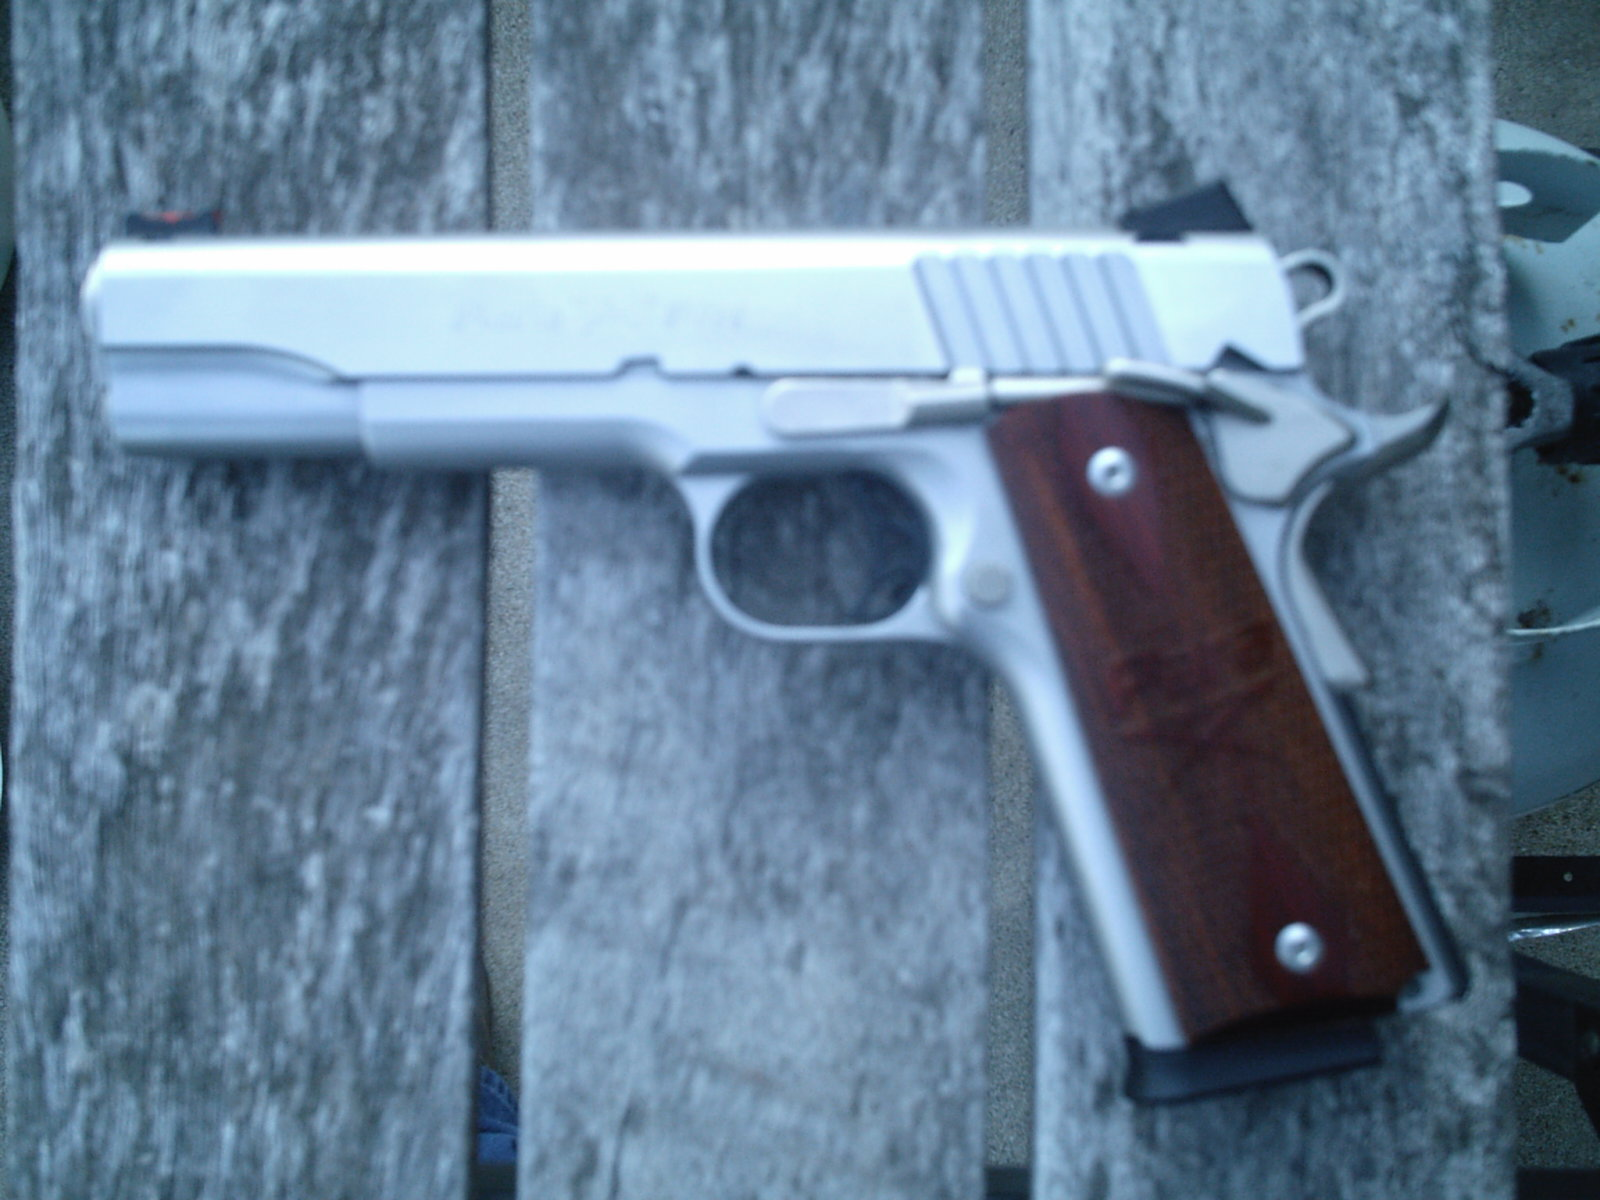 I joined the 1911 family today-imag0252.jpg